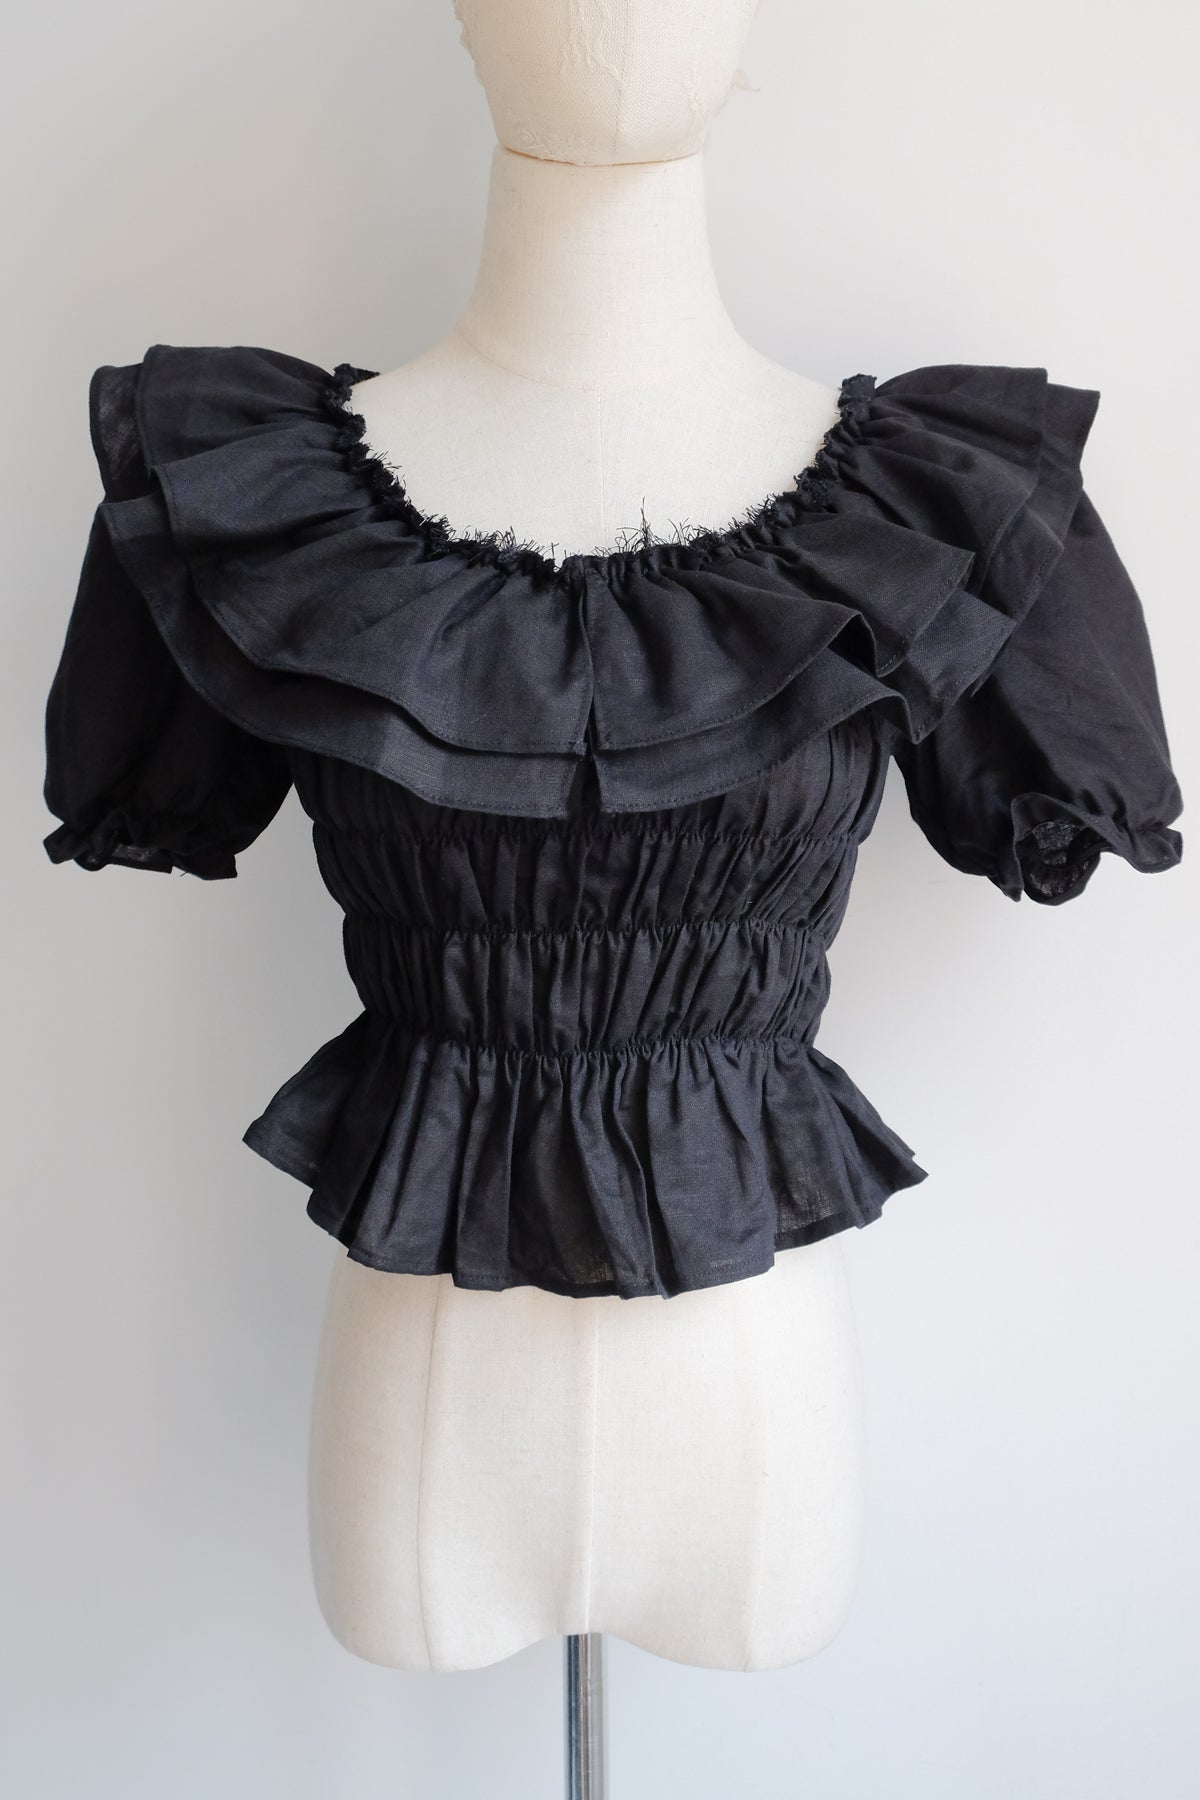 Image of SAMPLE SALE - Unreleased Black Top 026